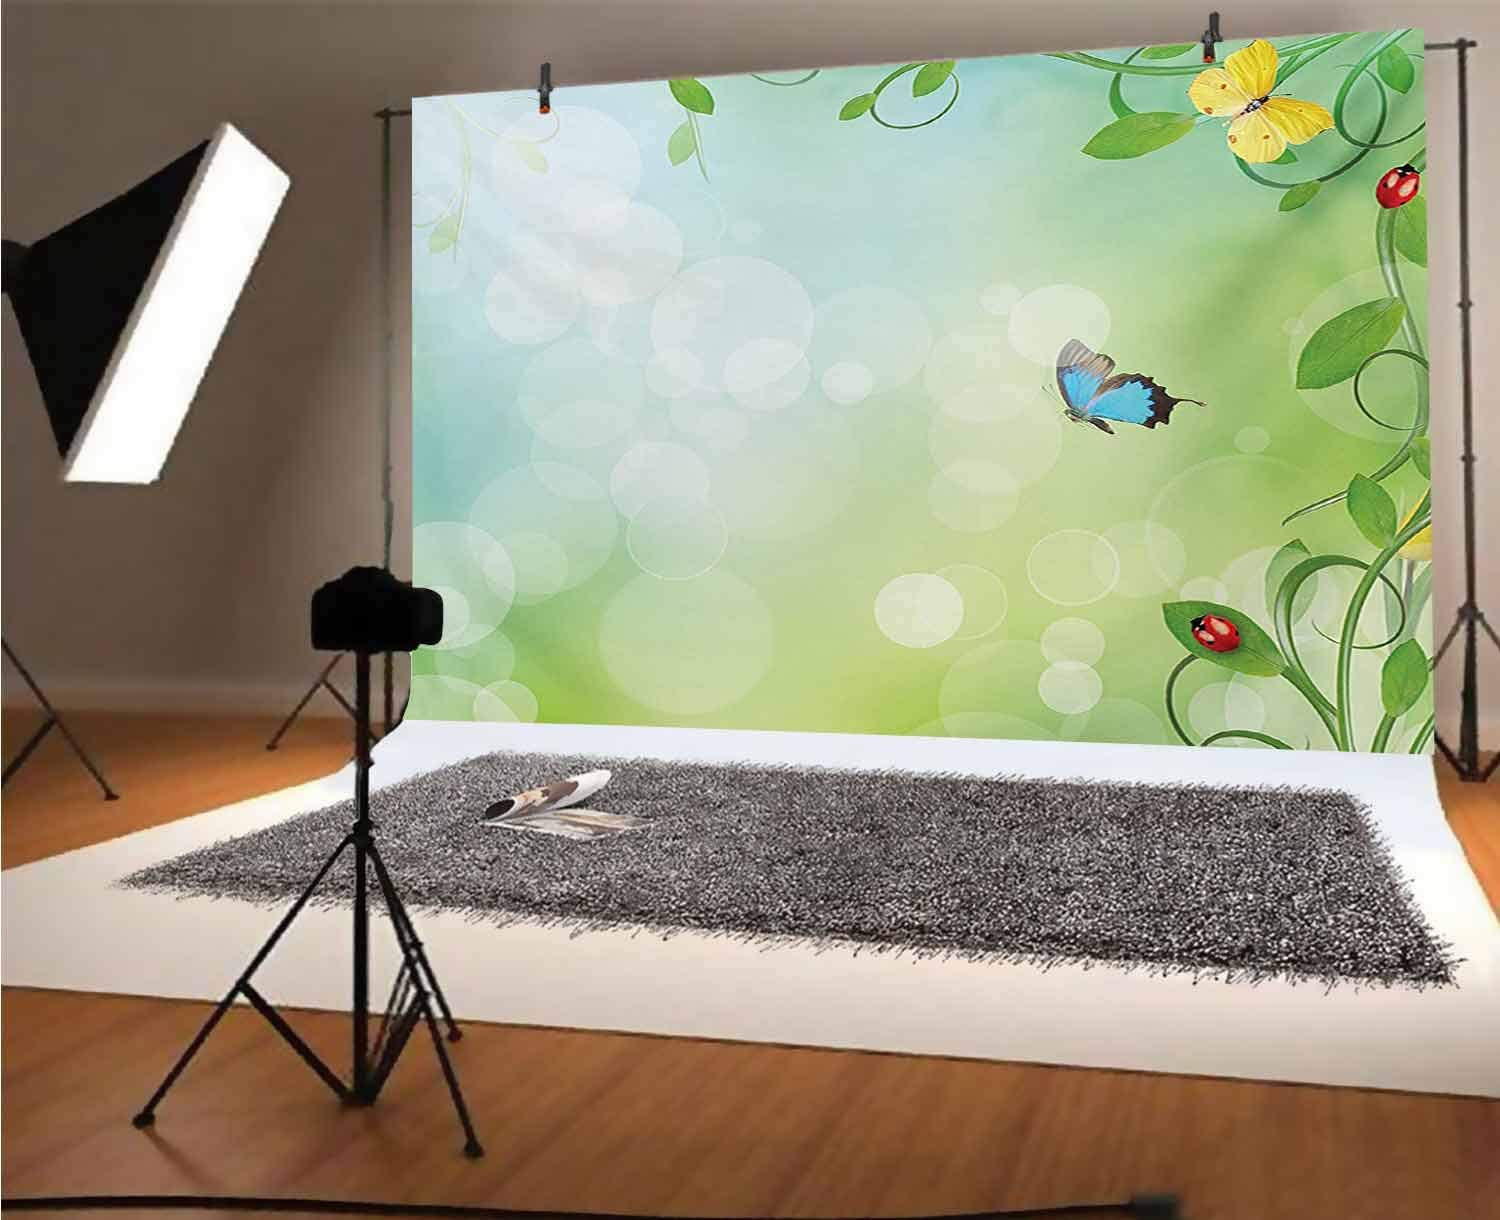 8x12 FT Ladybugs Vinyl Photography Background Backdrops,Blooming Flowers in The Field and Ladybugs Japanese Leaf Petals Nature Graphic Background for Selfie Birthday Party Pictures Photo Booth Shoot